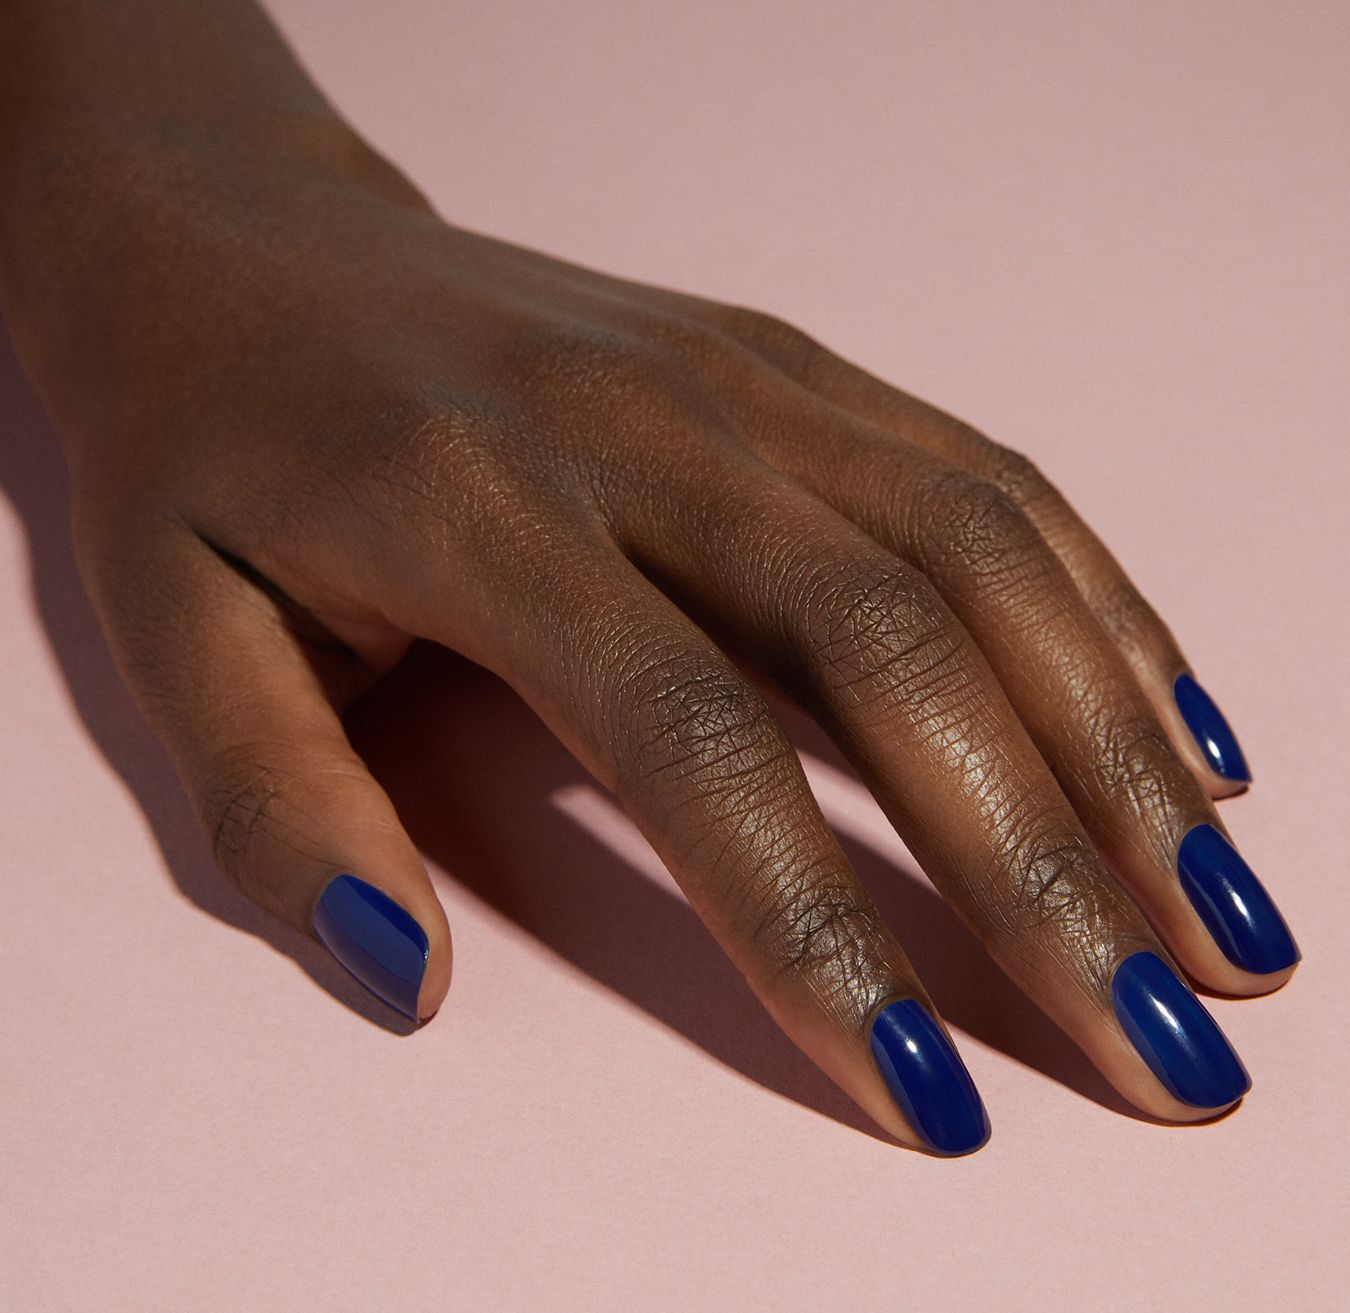 Our Cnd Blue Moon Nail Polish Shade Is The Dark Navy Color You Ve Been Looking For In 2020 Cnd Shellac Colors Blue Shellac Nails Gel Shellac Nails